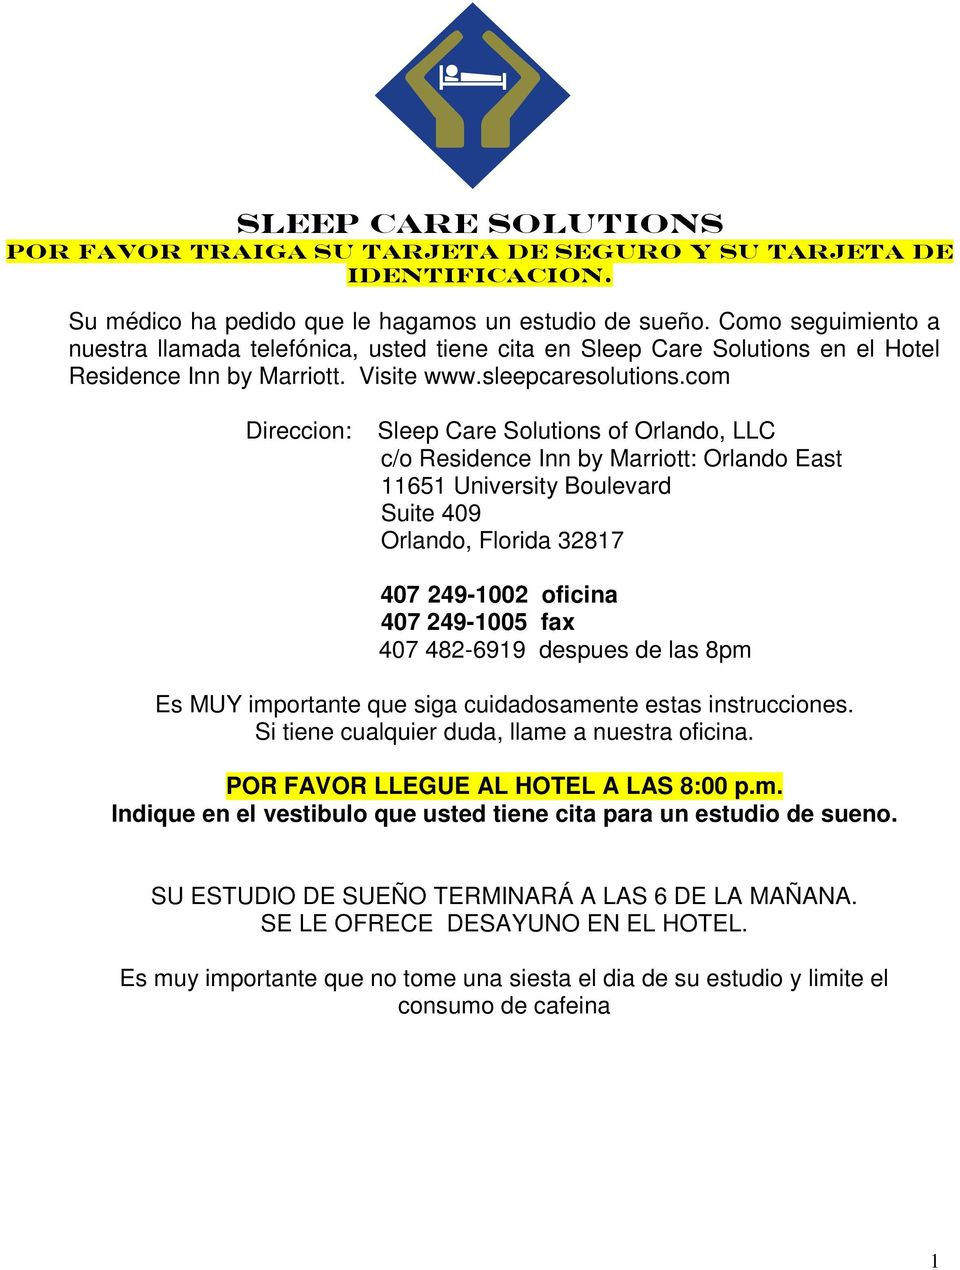 com Direccion: Sleep Care Solutions of Orlando, LLC c/o Residence Inn by Marriott: Orlando East 11651 University Boulevard Suite 409 Orlando, Florida 32817 407 249-1002 oficina 407 249-1005 fax 407